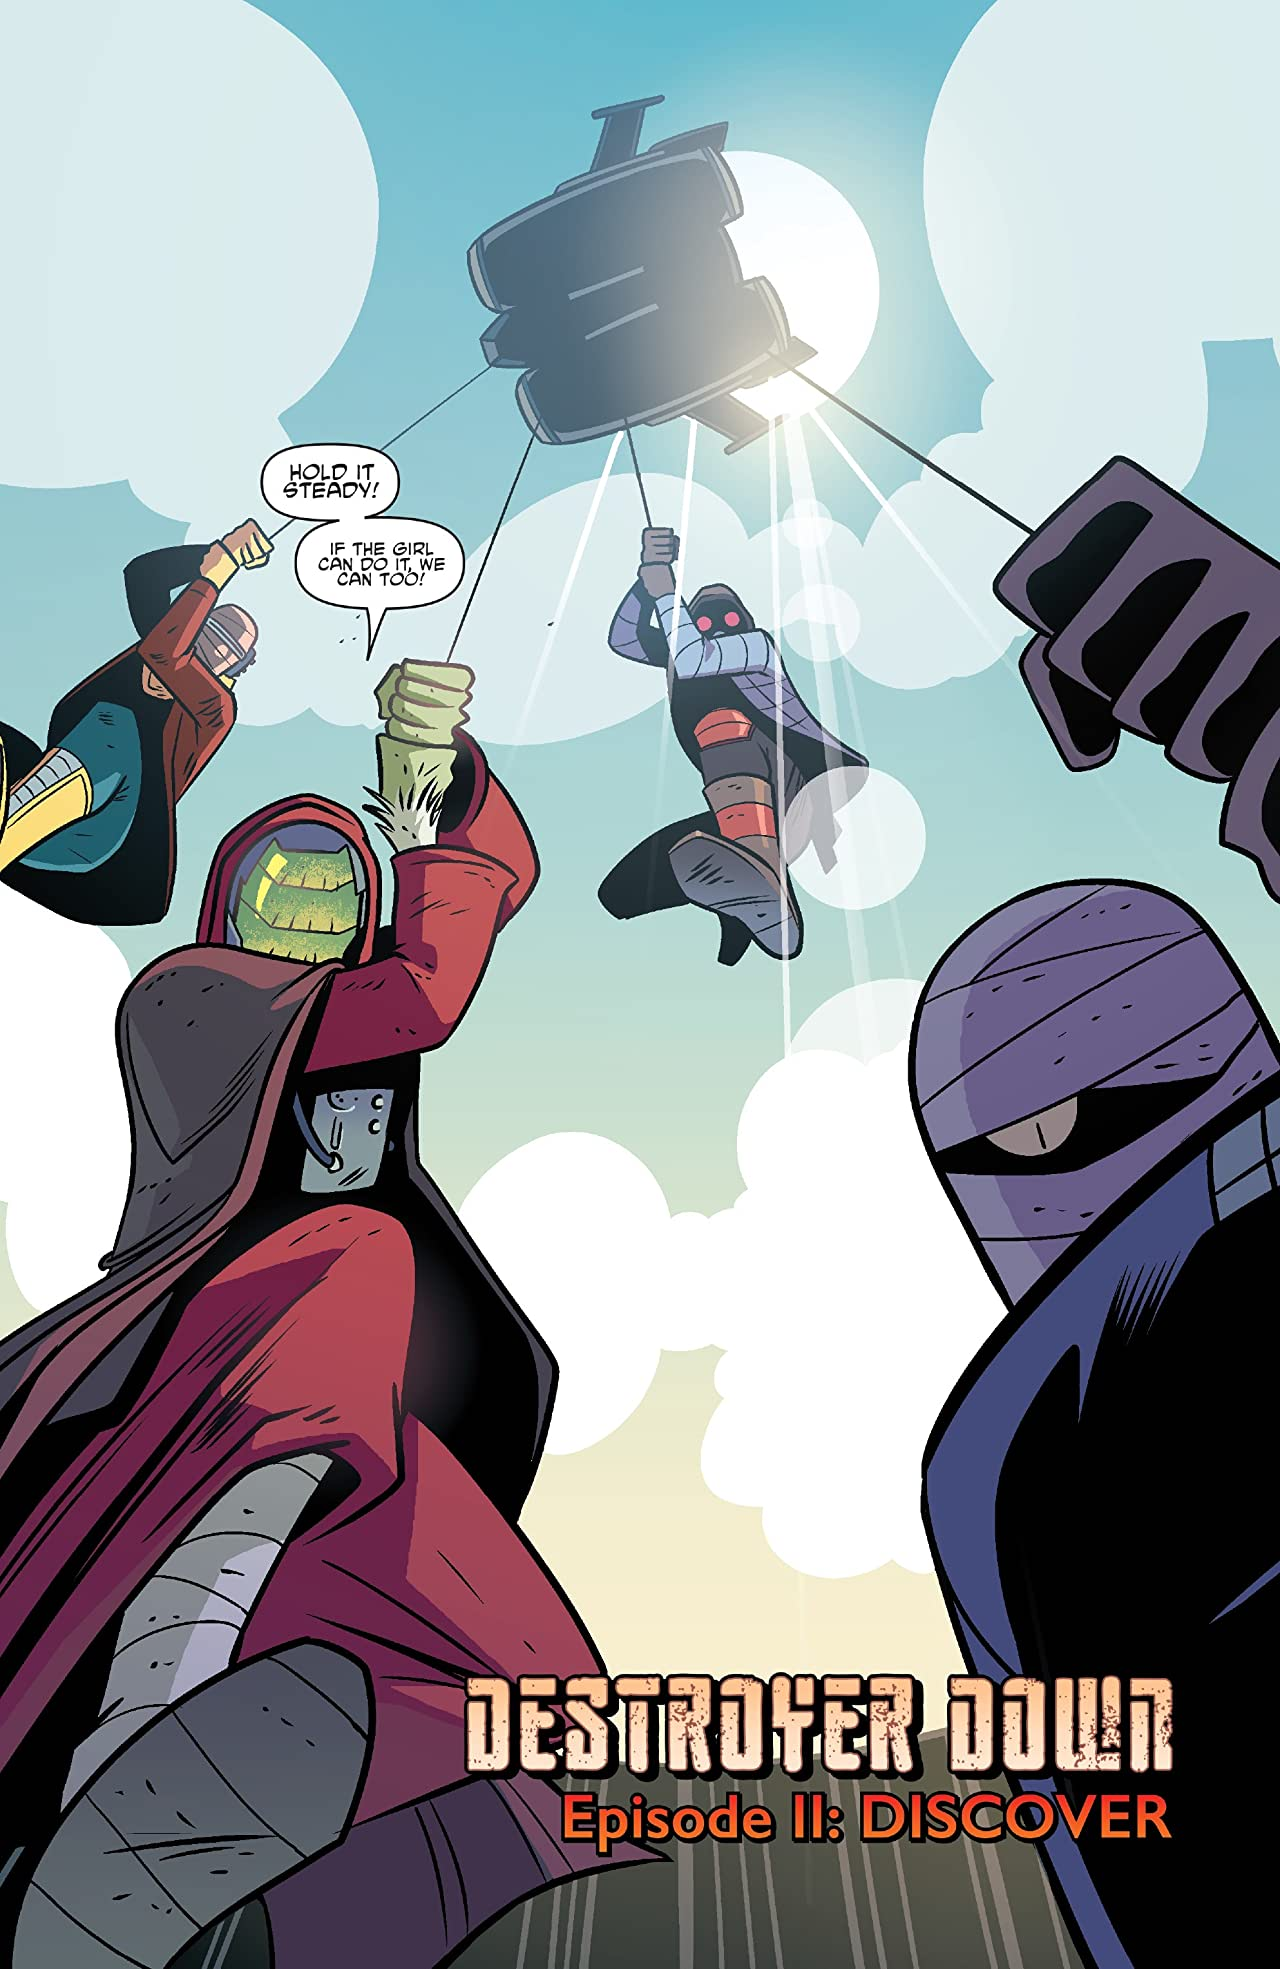 Star Wars Adventures: Destroyer Down #2